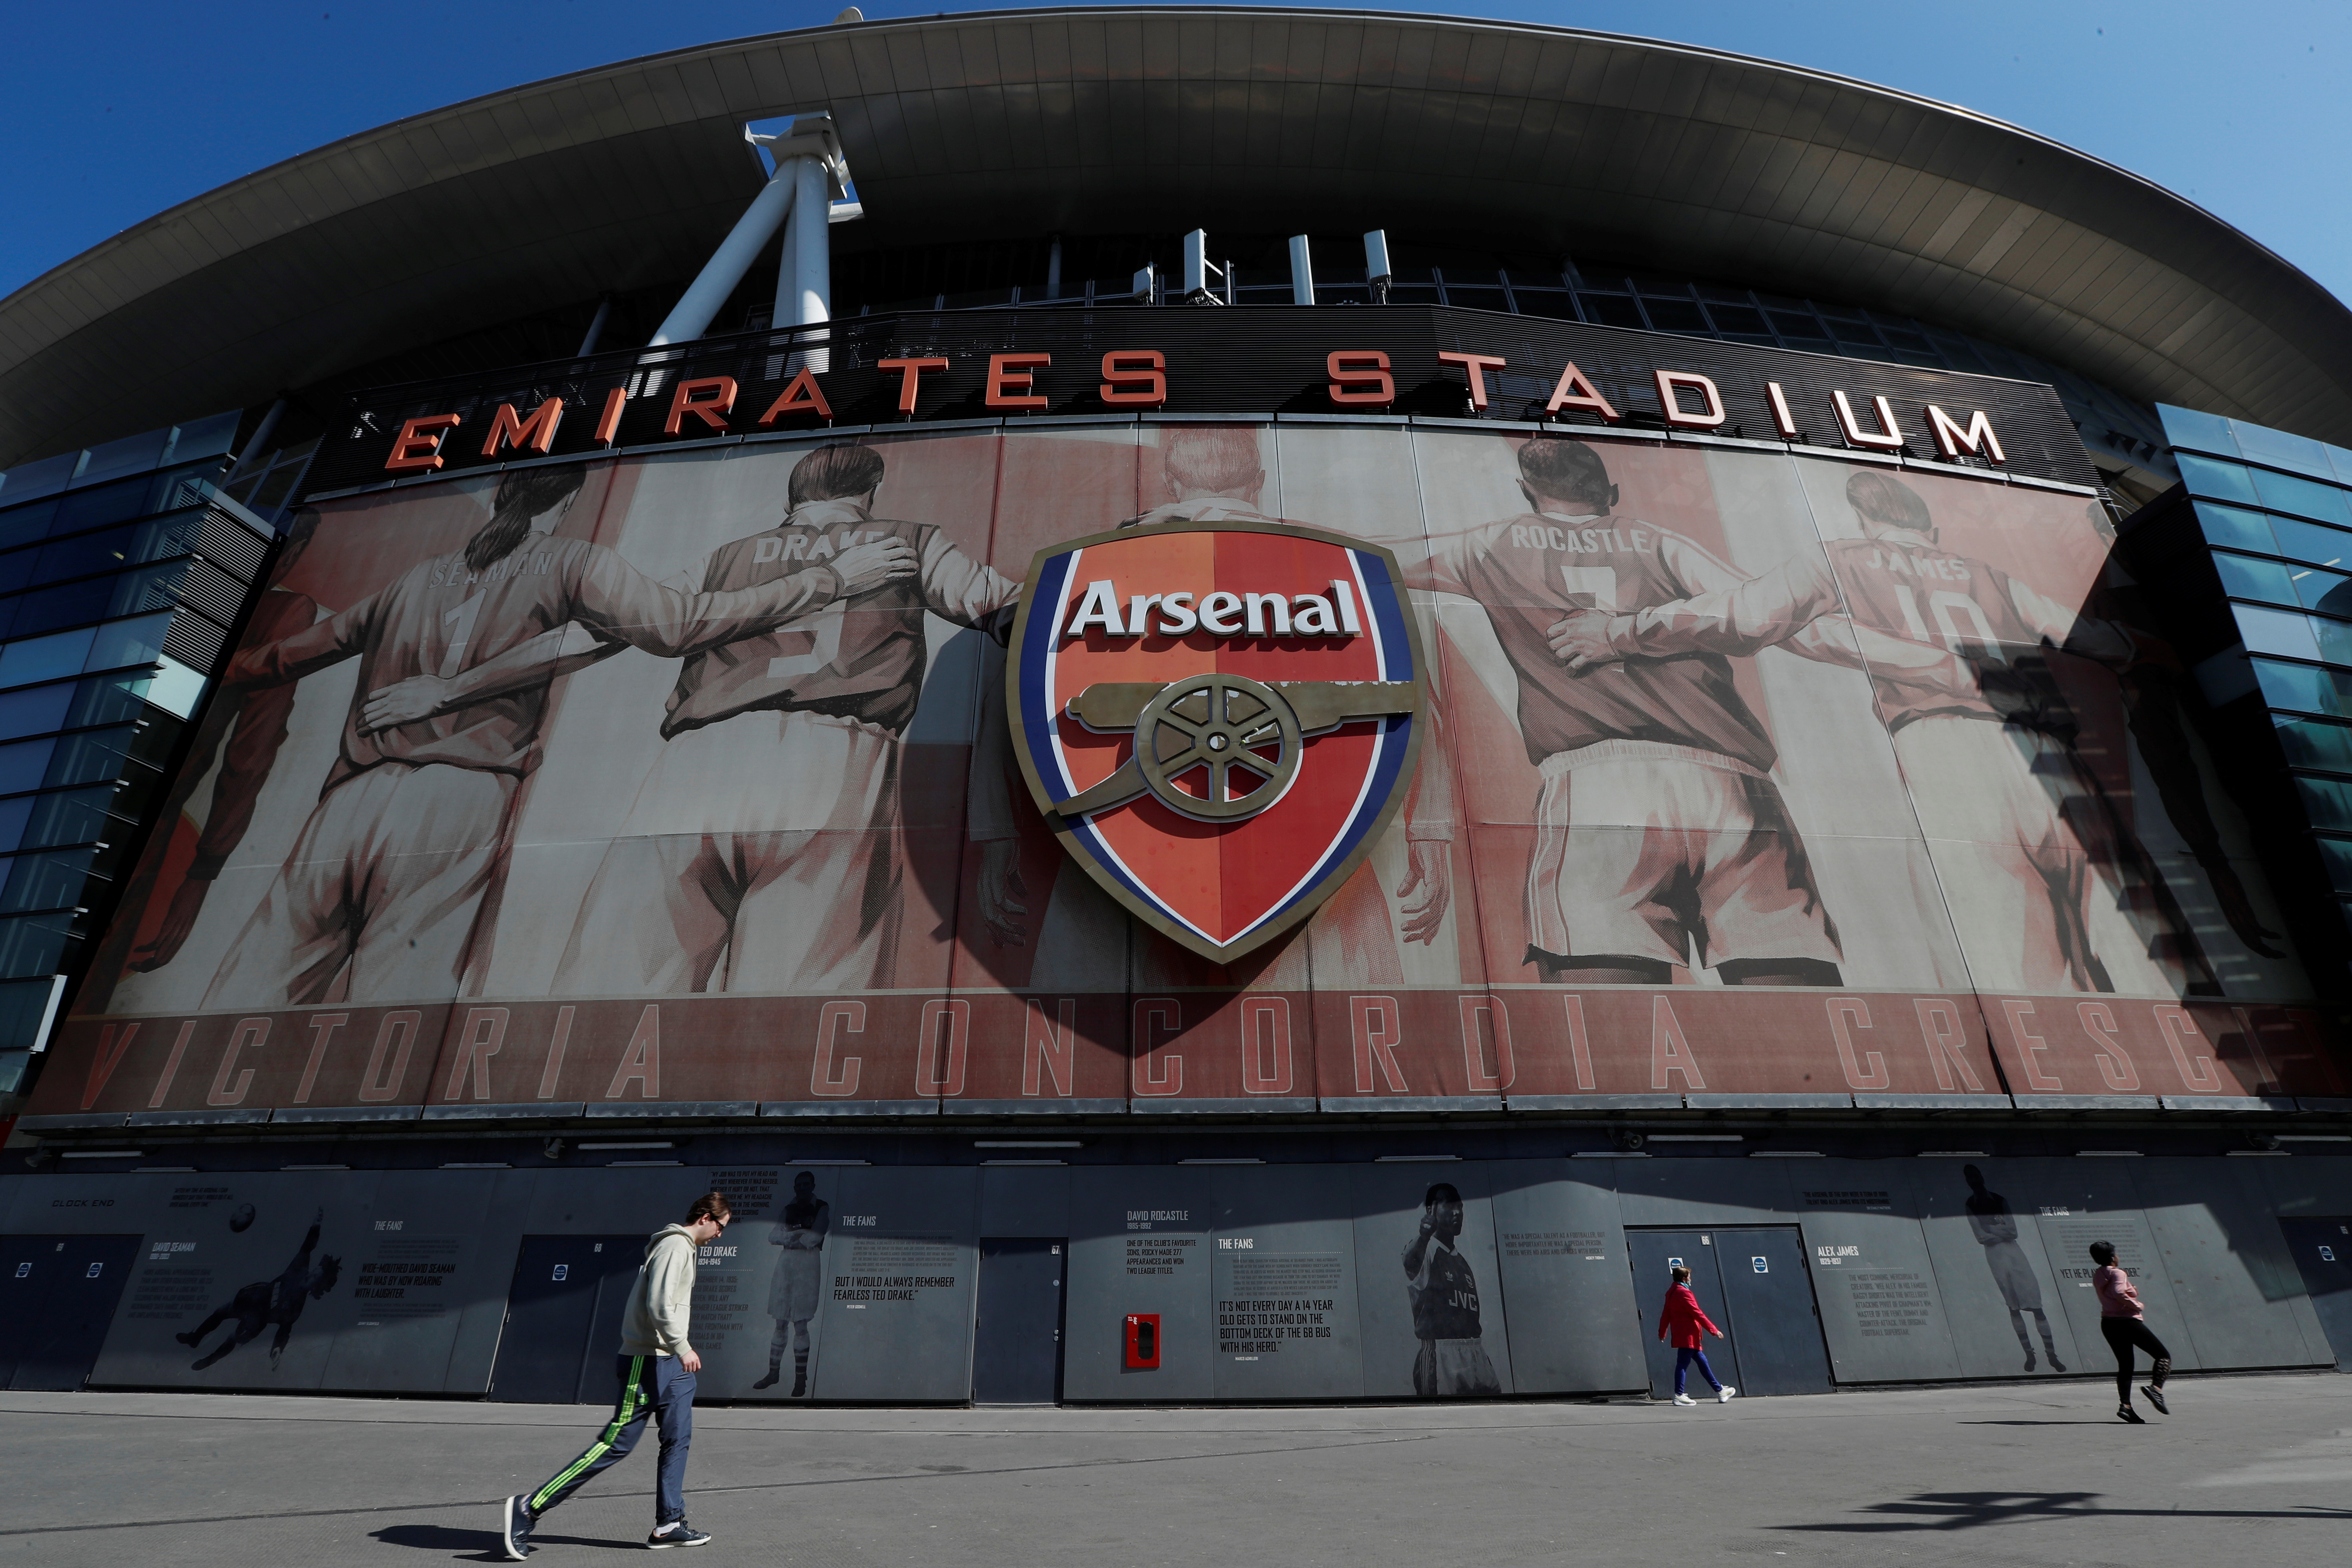 Soccer Football - The Emirates Stadium is seen as twelve of Europe's top football clubs launch a breakaway Super League - London, Britain - April 19, 2021 REUTERS/Paul Childs